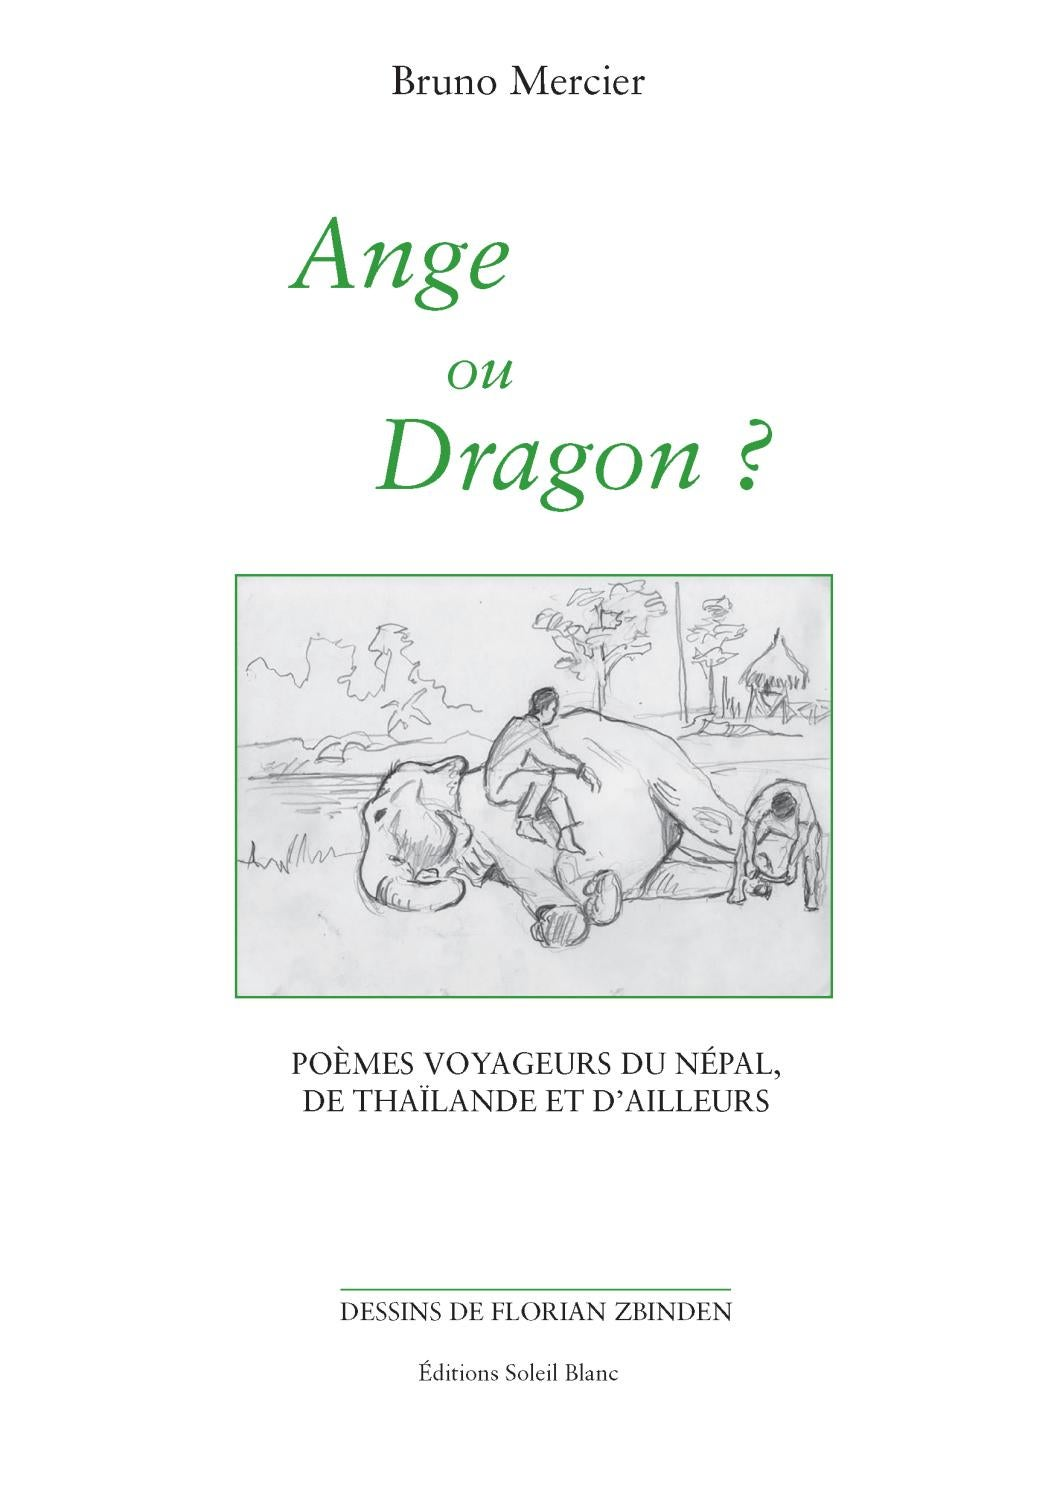 Ange Ou Dragon De Bruno Mercier By éditions Soleil Blanc